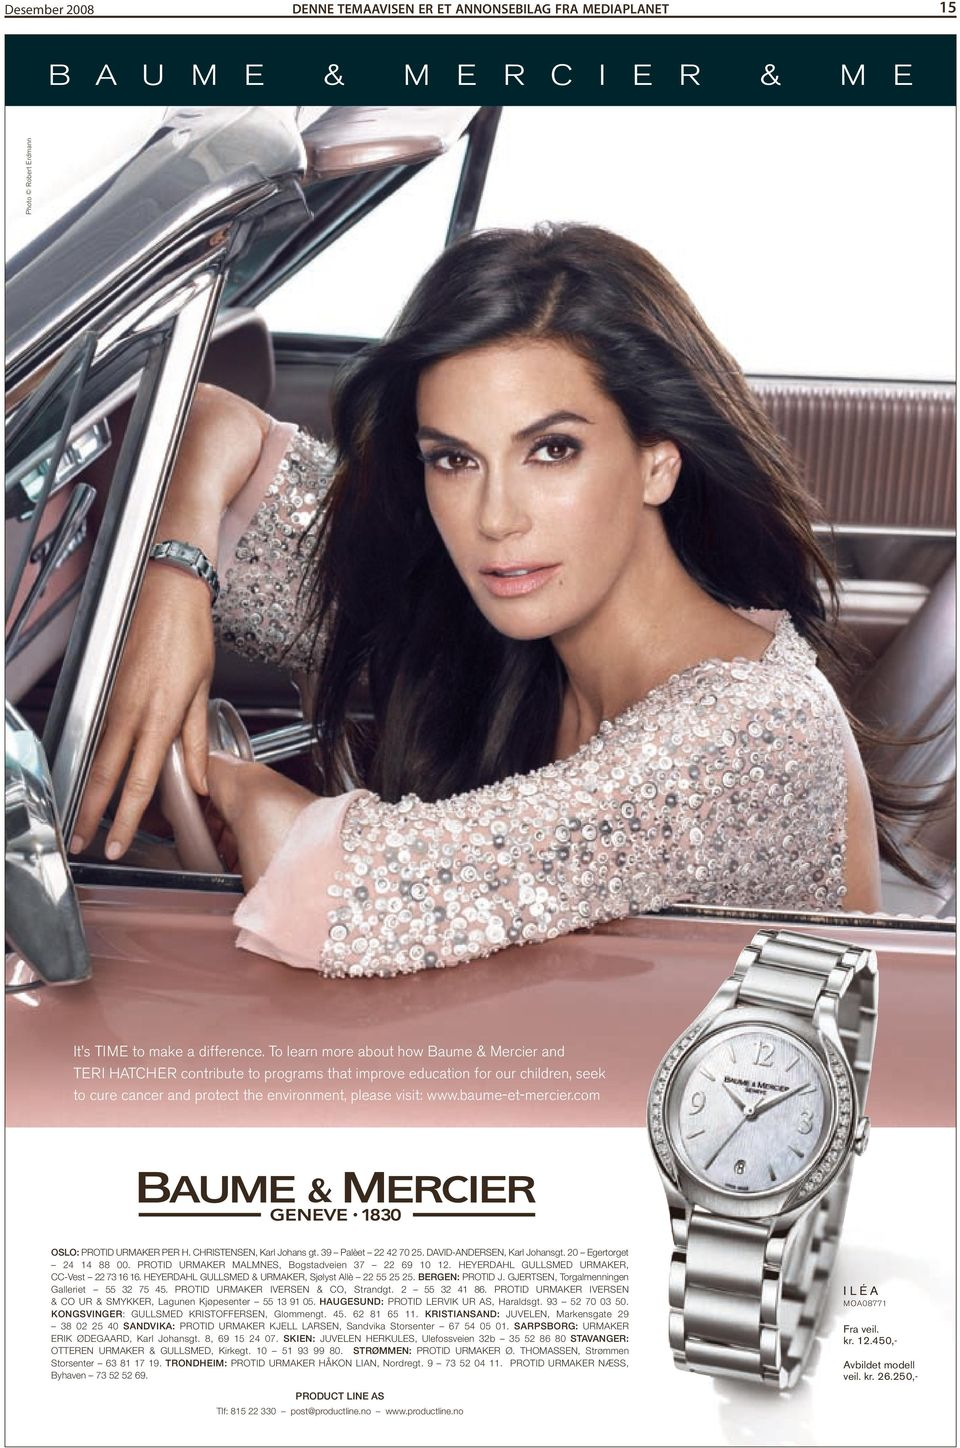 To learn more about how Baume & Mercier and TERI HATCHER contribute to programs that improve education for our children, seek to cure cancer and protect environment, please visit: www.